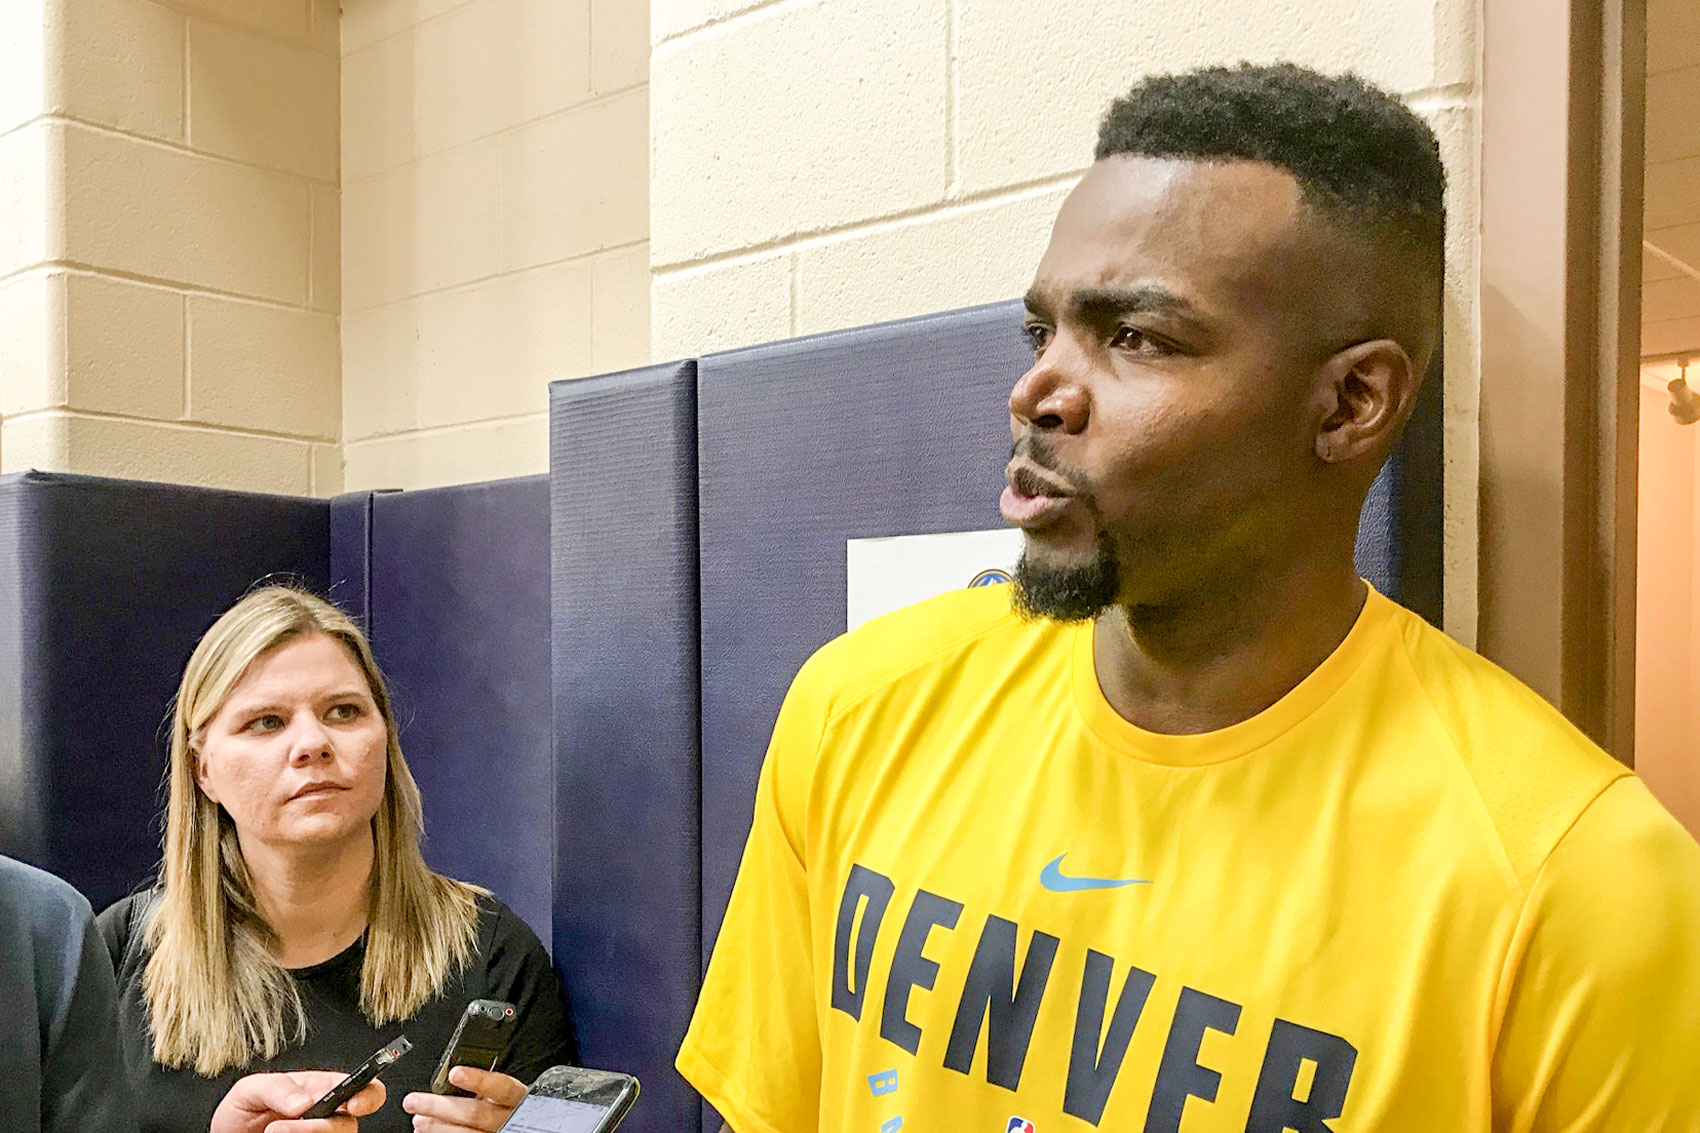 <p>Free agent Denver Nugget power forward Paul Millsap taking questions from reporters. The Denver Post's Gina Mizellis in the background.</p>